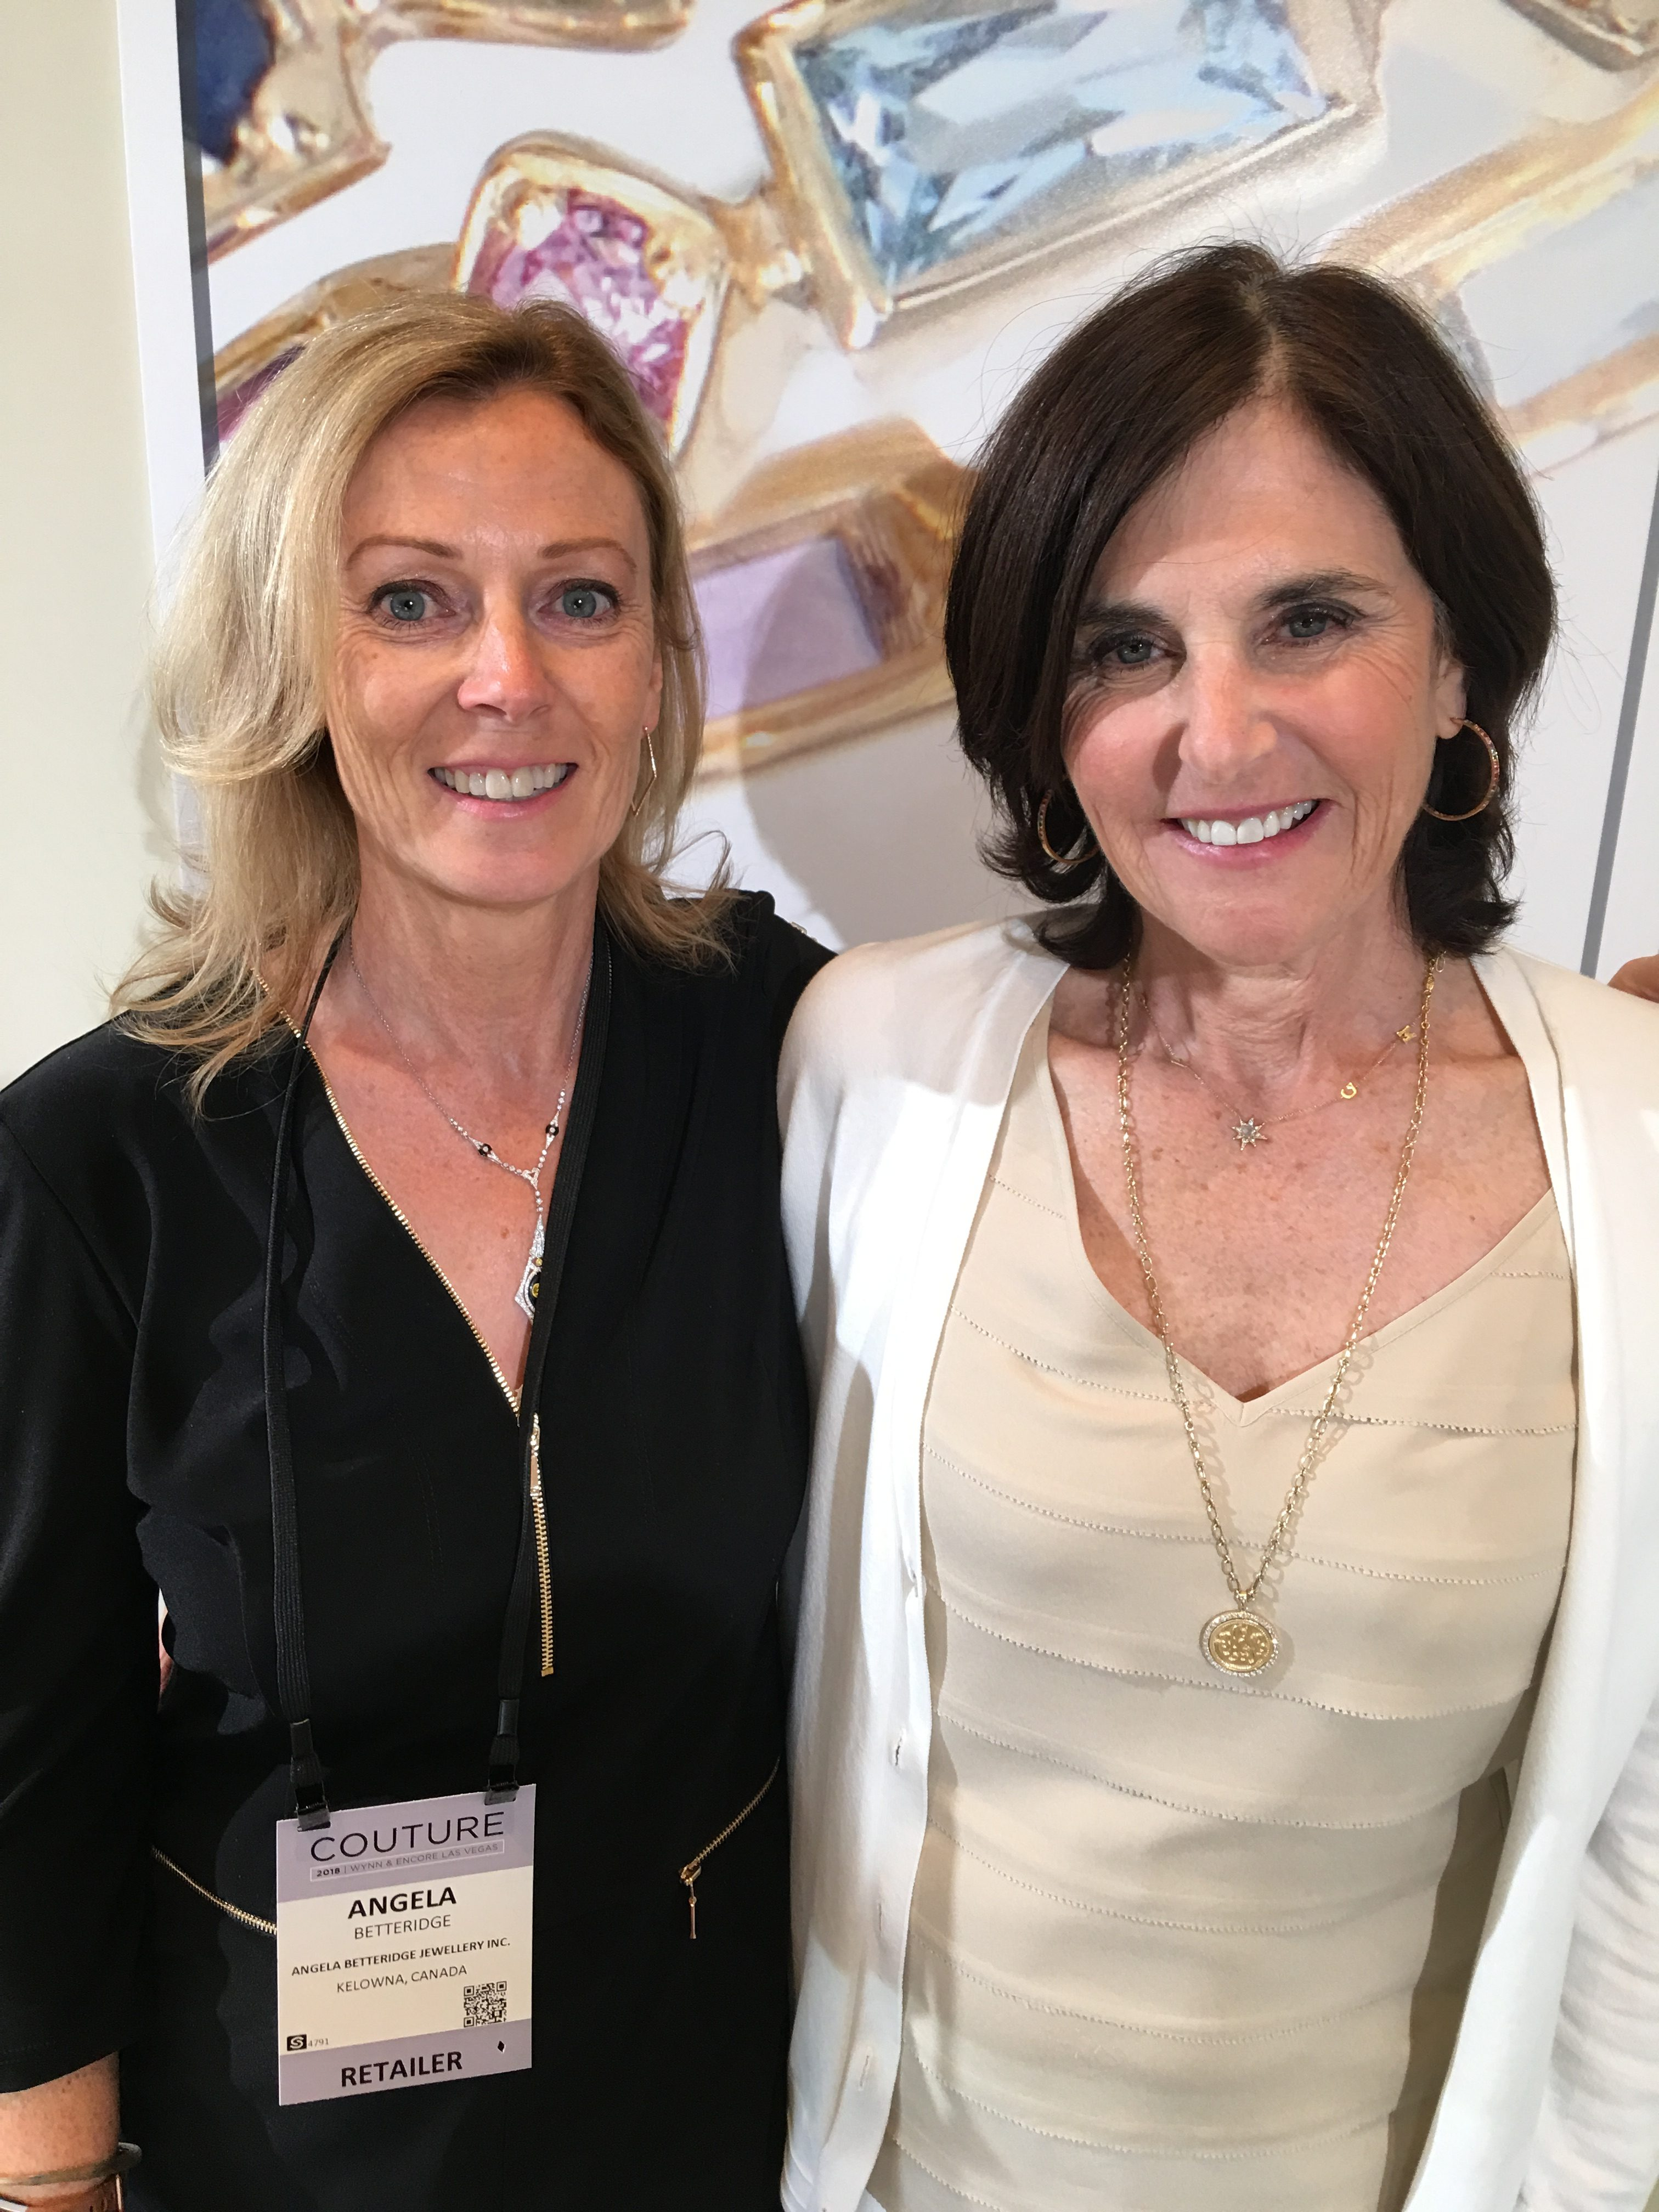 Angela Betteridge and ANZIE at Couture Las Vegas 2018